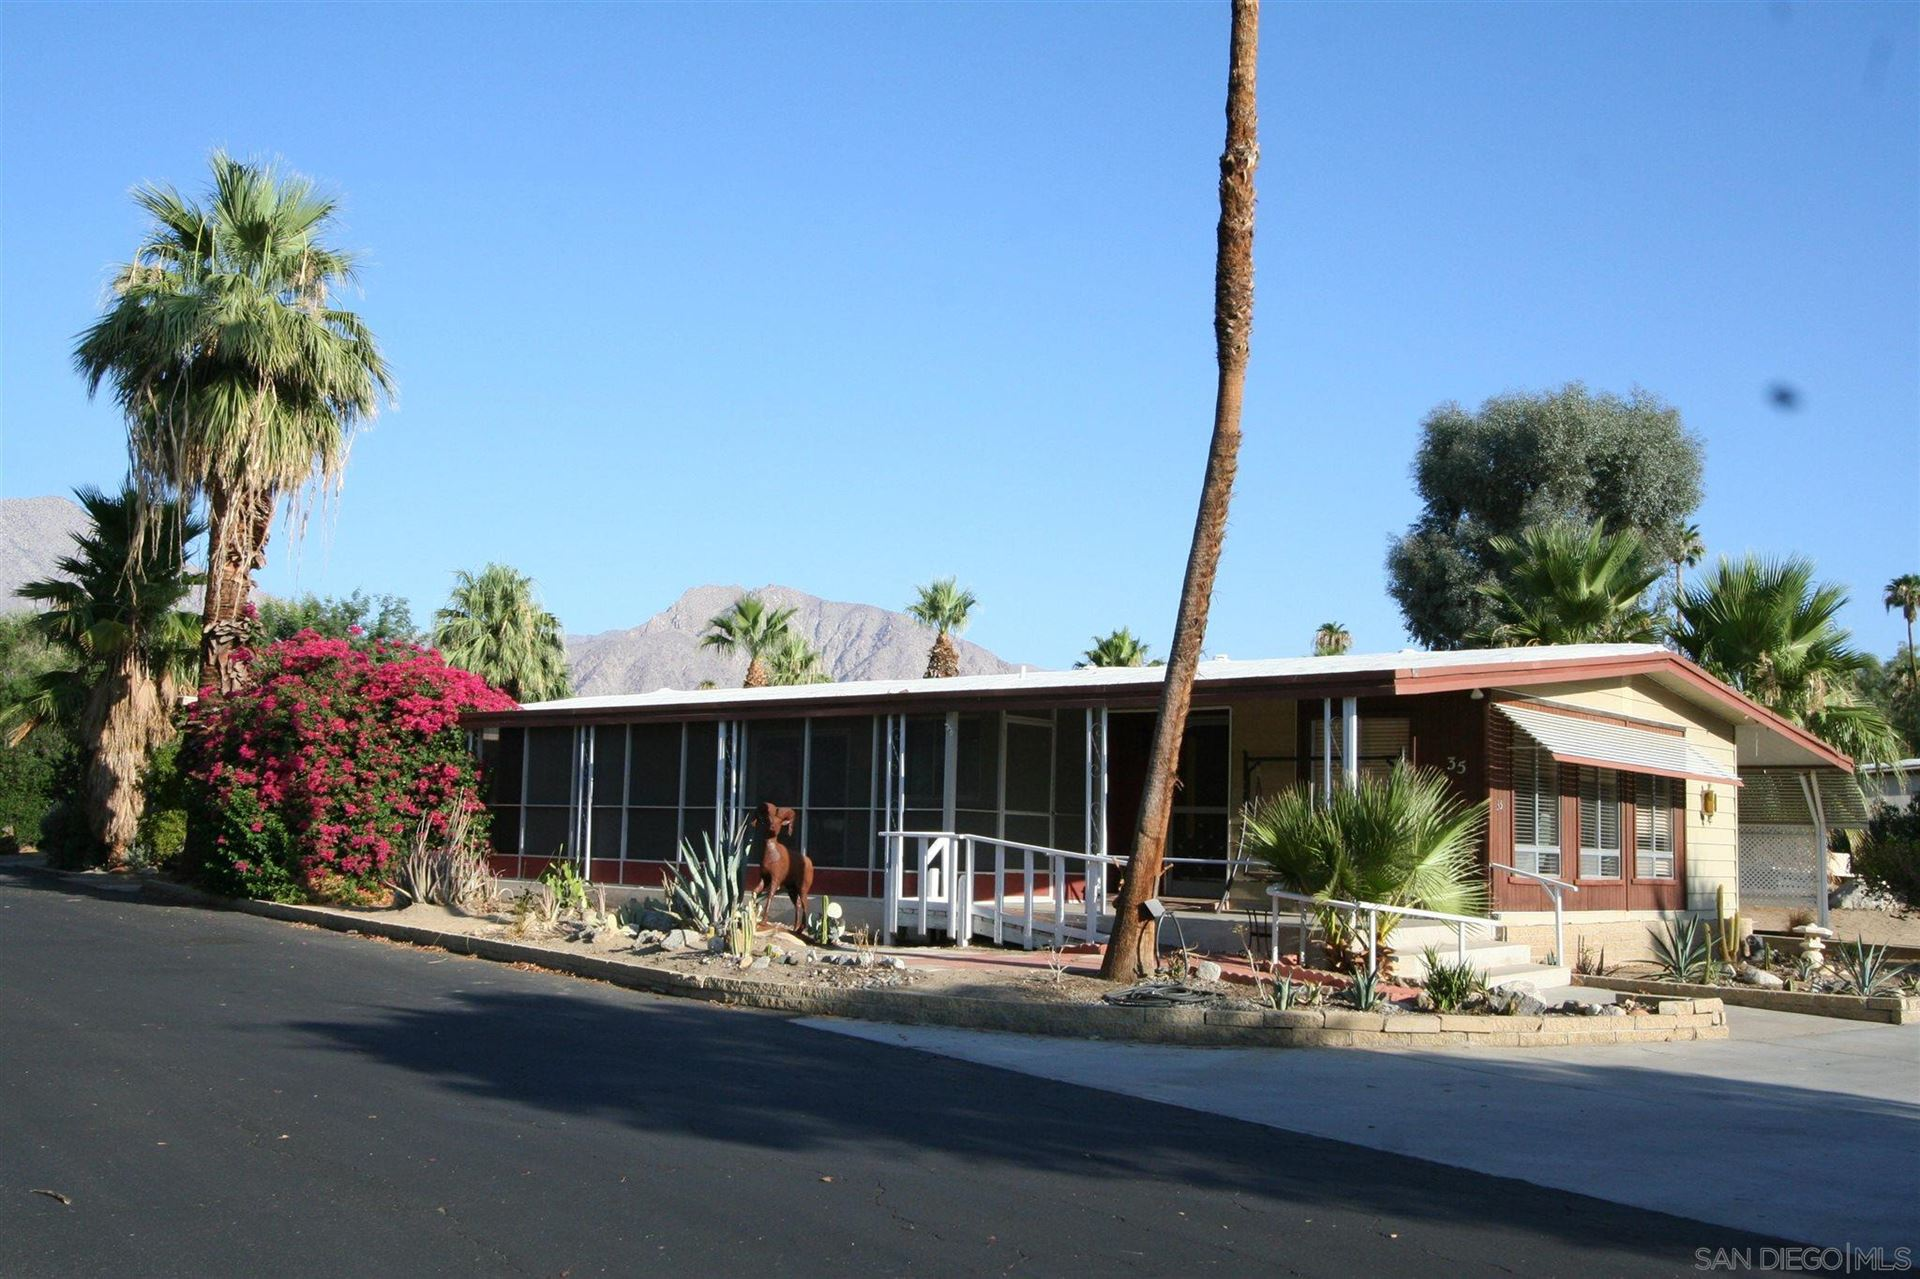 Photo of 1010 Palm Canyon Dr #35, Borrego Springs, CA 92004 (MLS # 210020695)